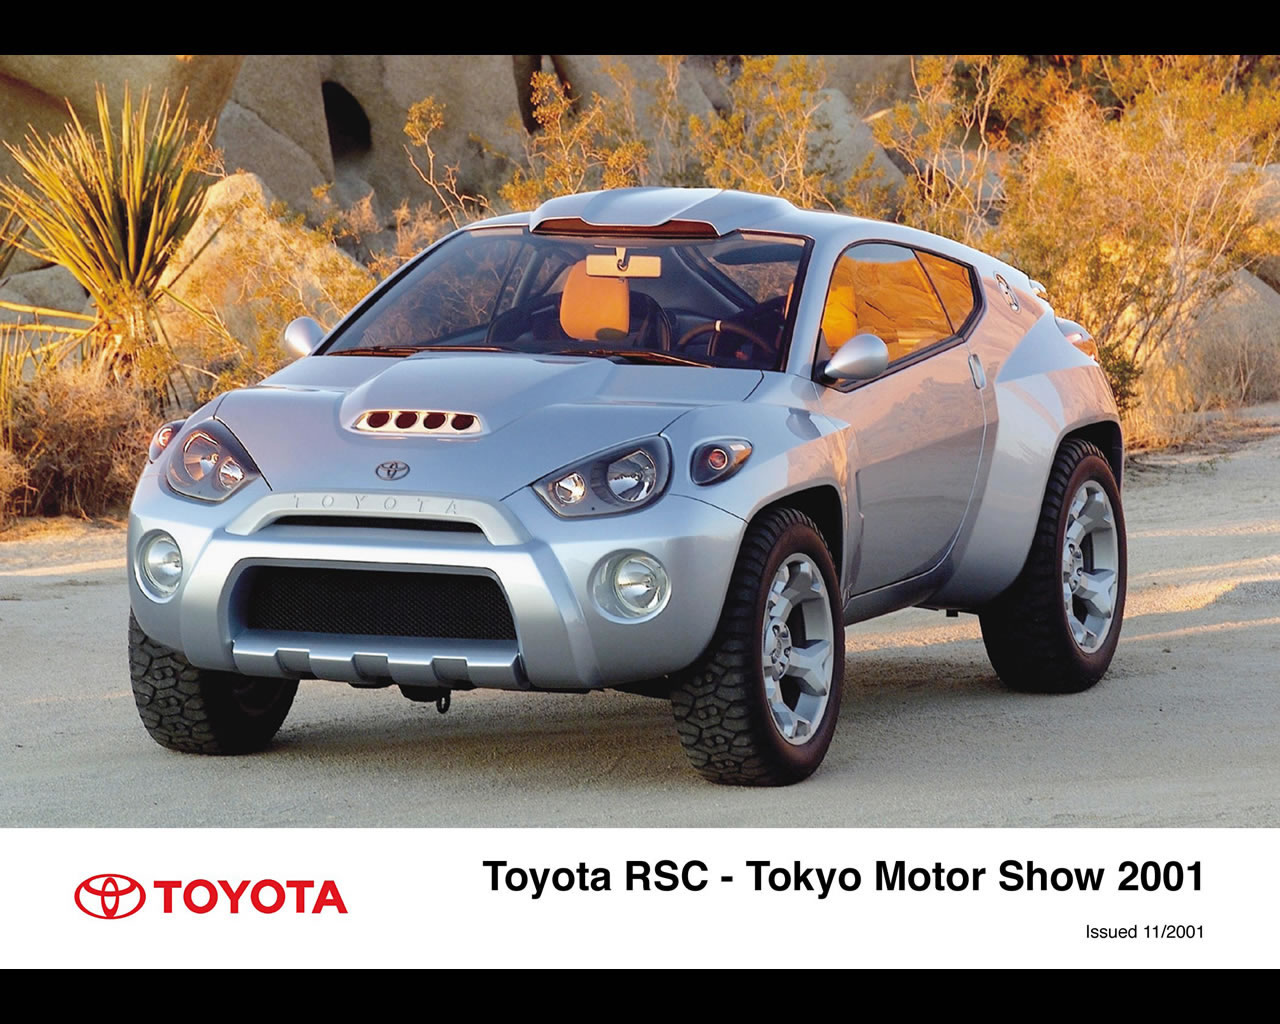 2019 Toyota Fine T Fuel Cell Hybrid Concept photo - 4